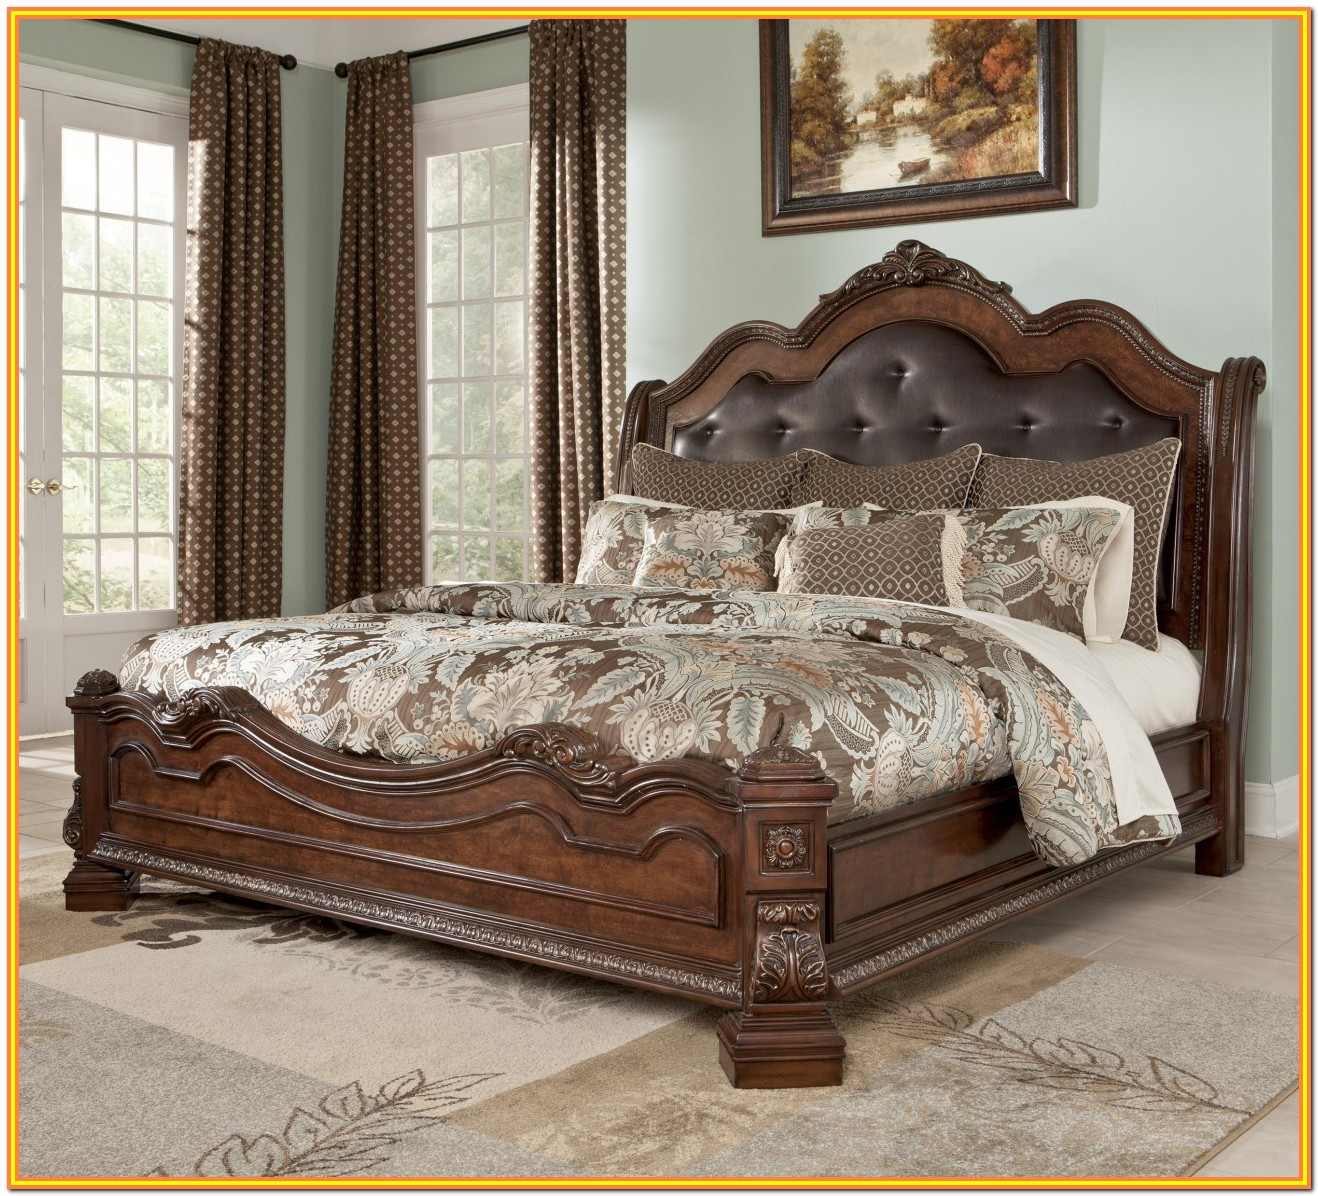 King Size Bed Frame With Headboard And Storage